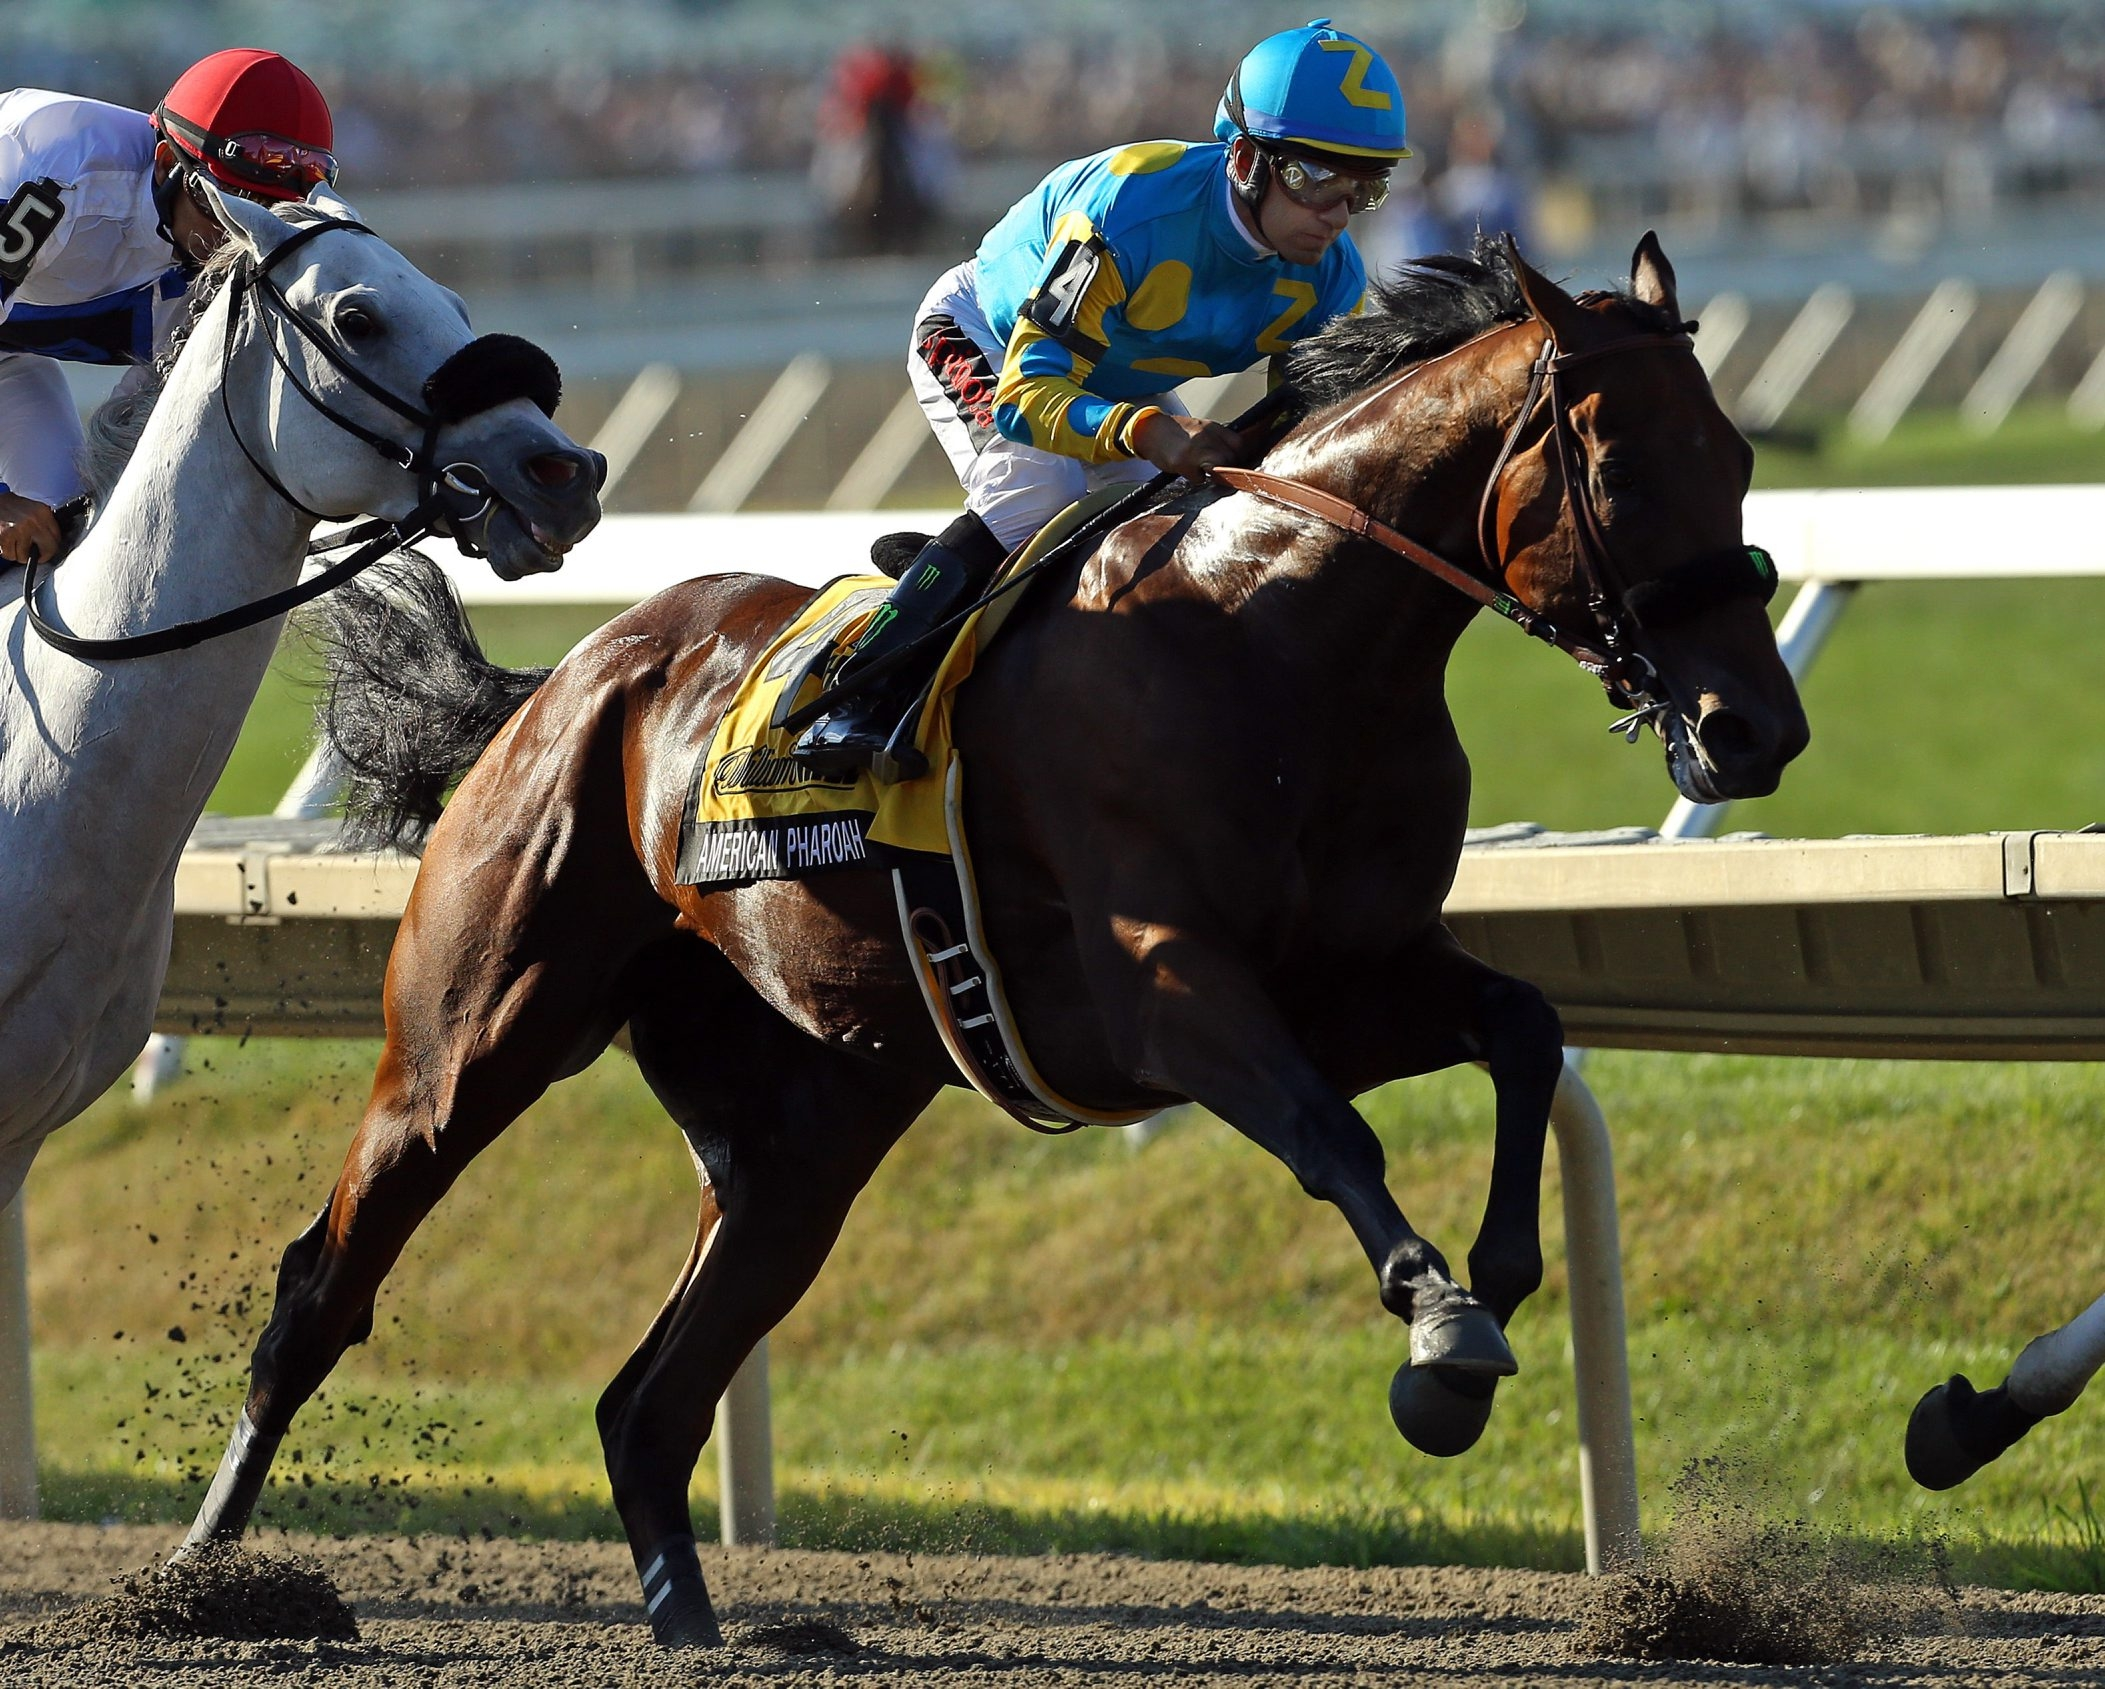 American Pharoah will take part in his last race at Saturday's Breeders' Cup.